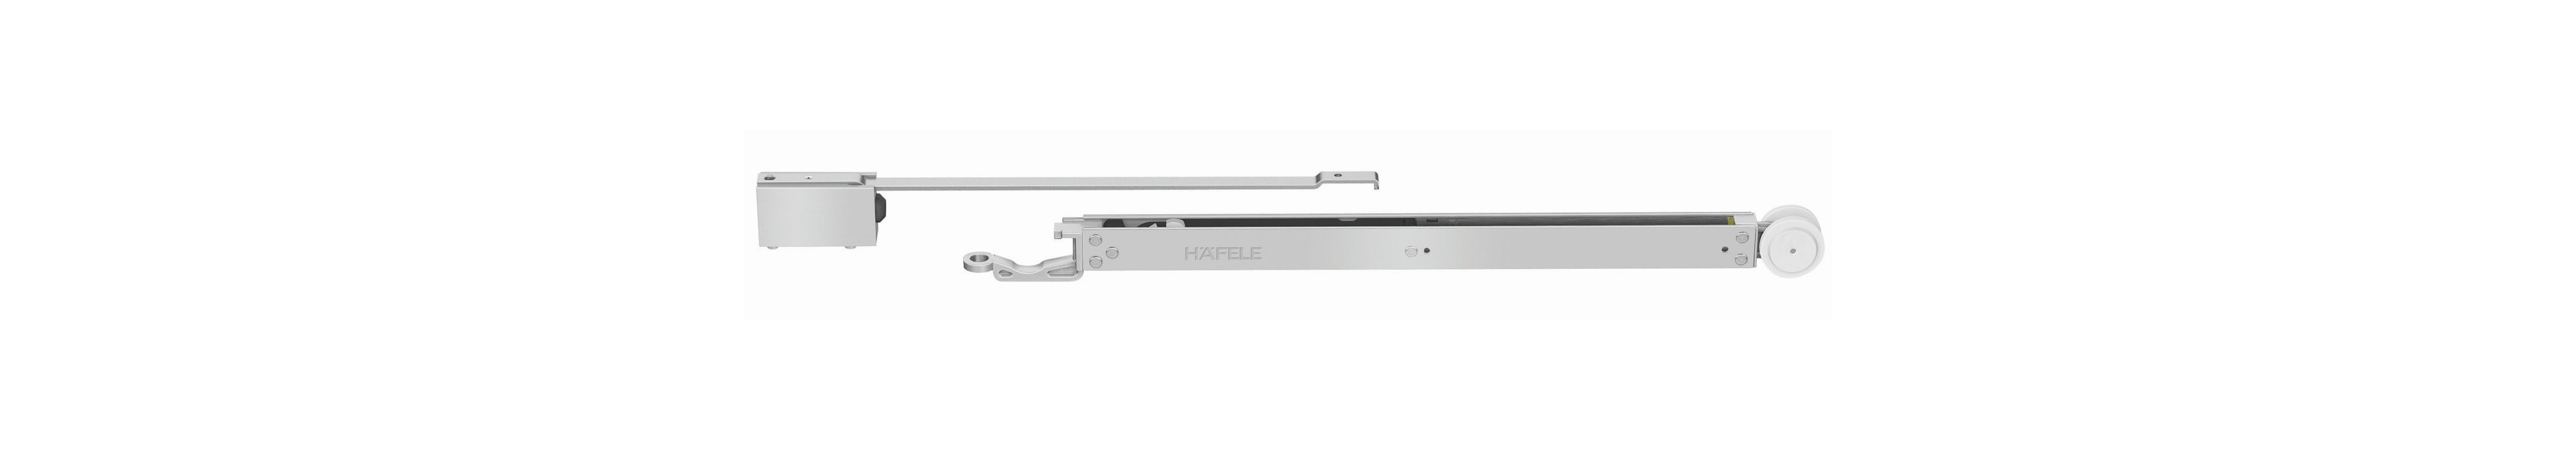 Hafele 940 80 043 Sliding Door Hardware Sliding Doors Ceiling Lights